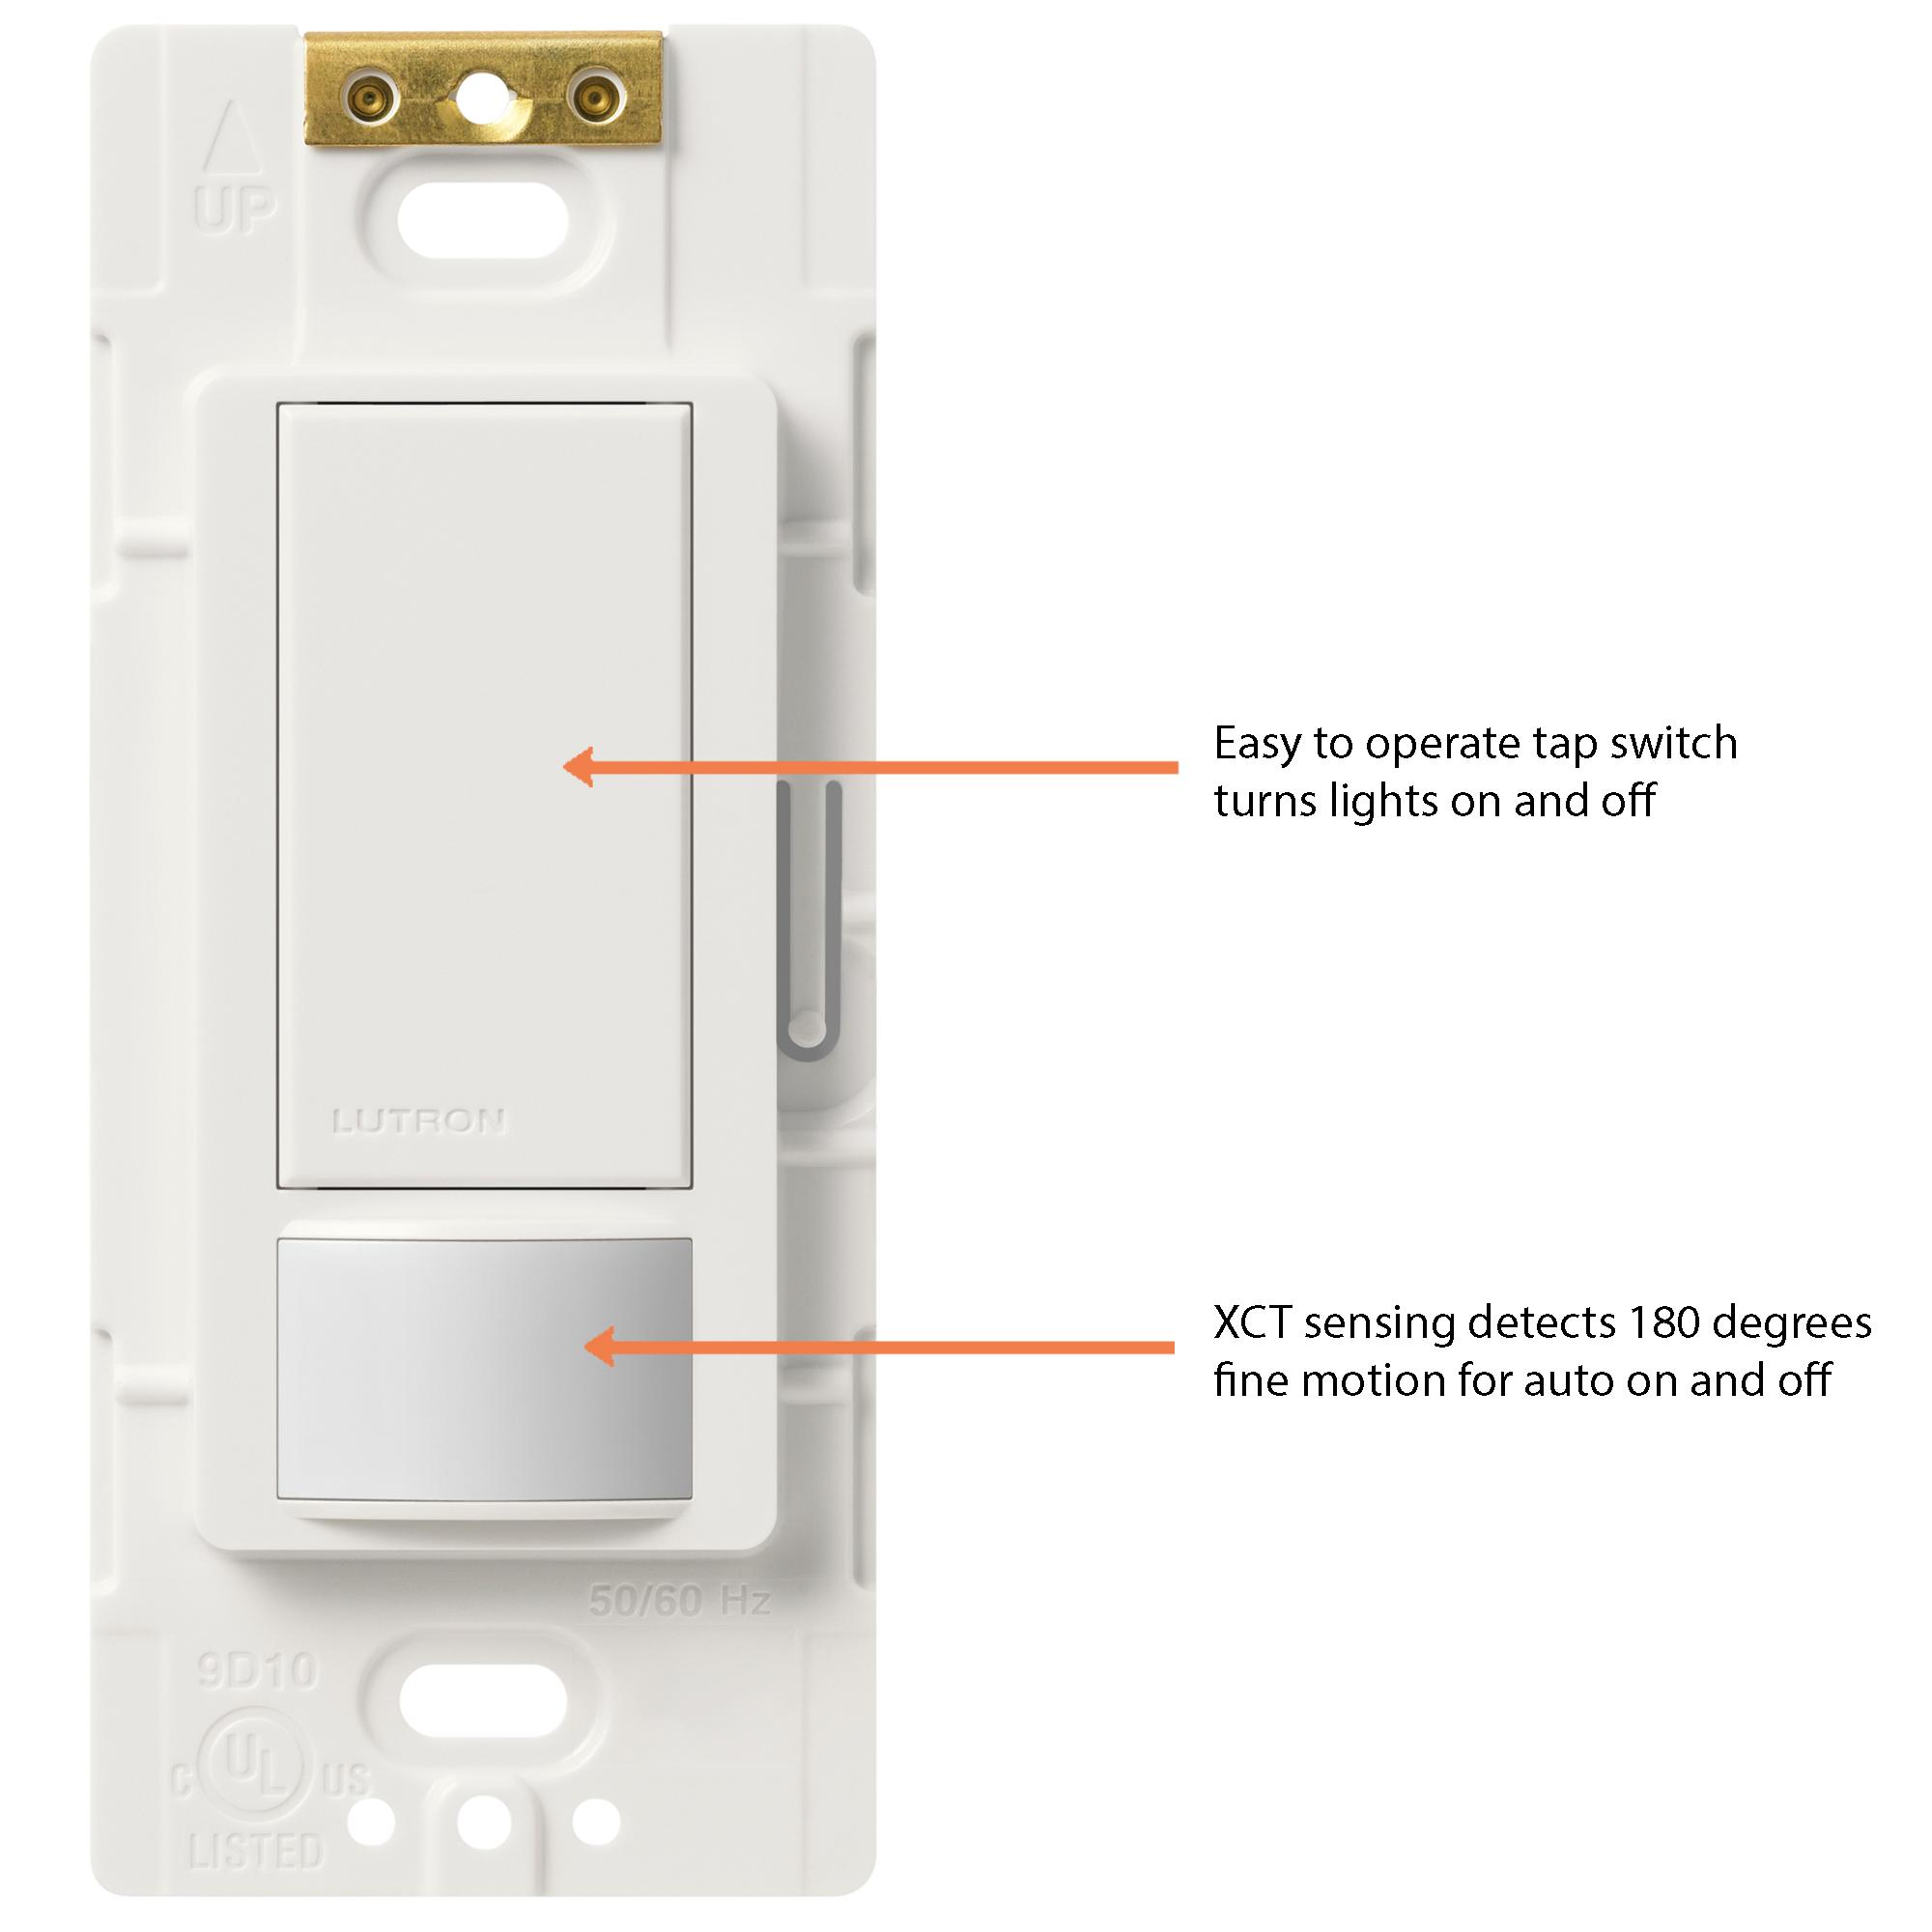 397c5dca 0d34 4427 b75c 597d2b5d6670._CB293281407__SR300300_ lutron maestro sensor switch, 2a, no neutral required, single pole ms-ops5mh-wh wiring diagram at bayanpartner.co